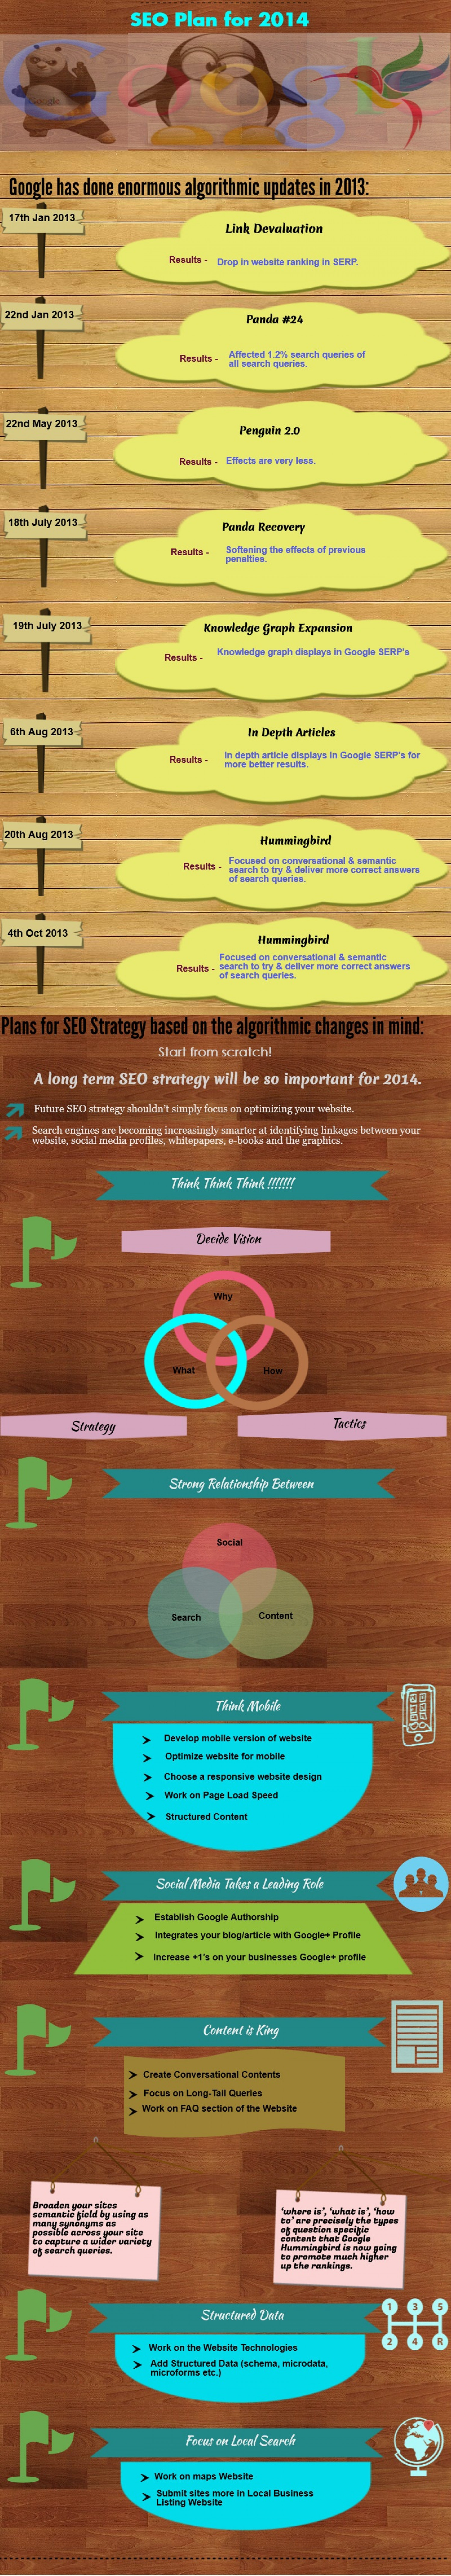 SEO Strategy or Plan for 2014 Infographic